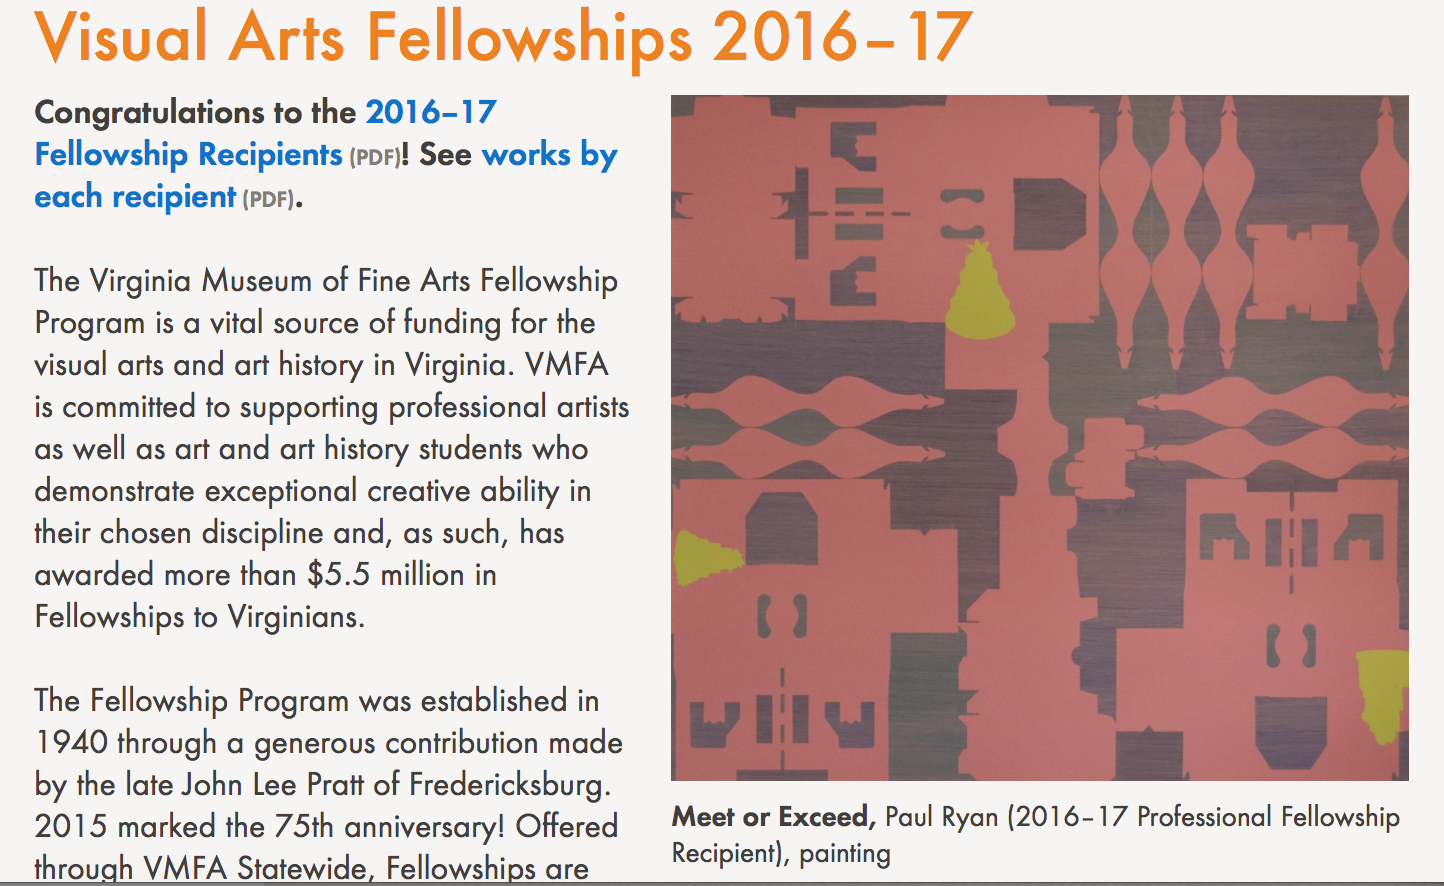 VMFA Visual Arts Fellowship Recipients 2016-2017